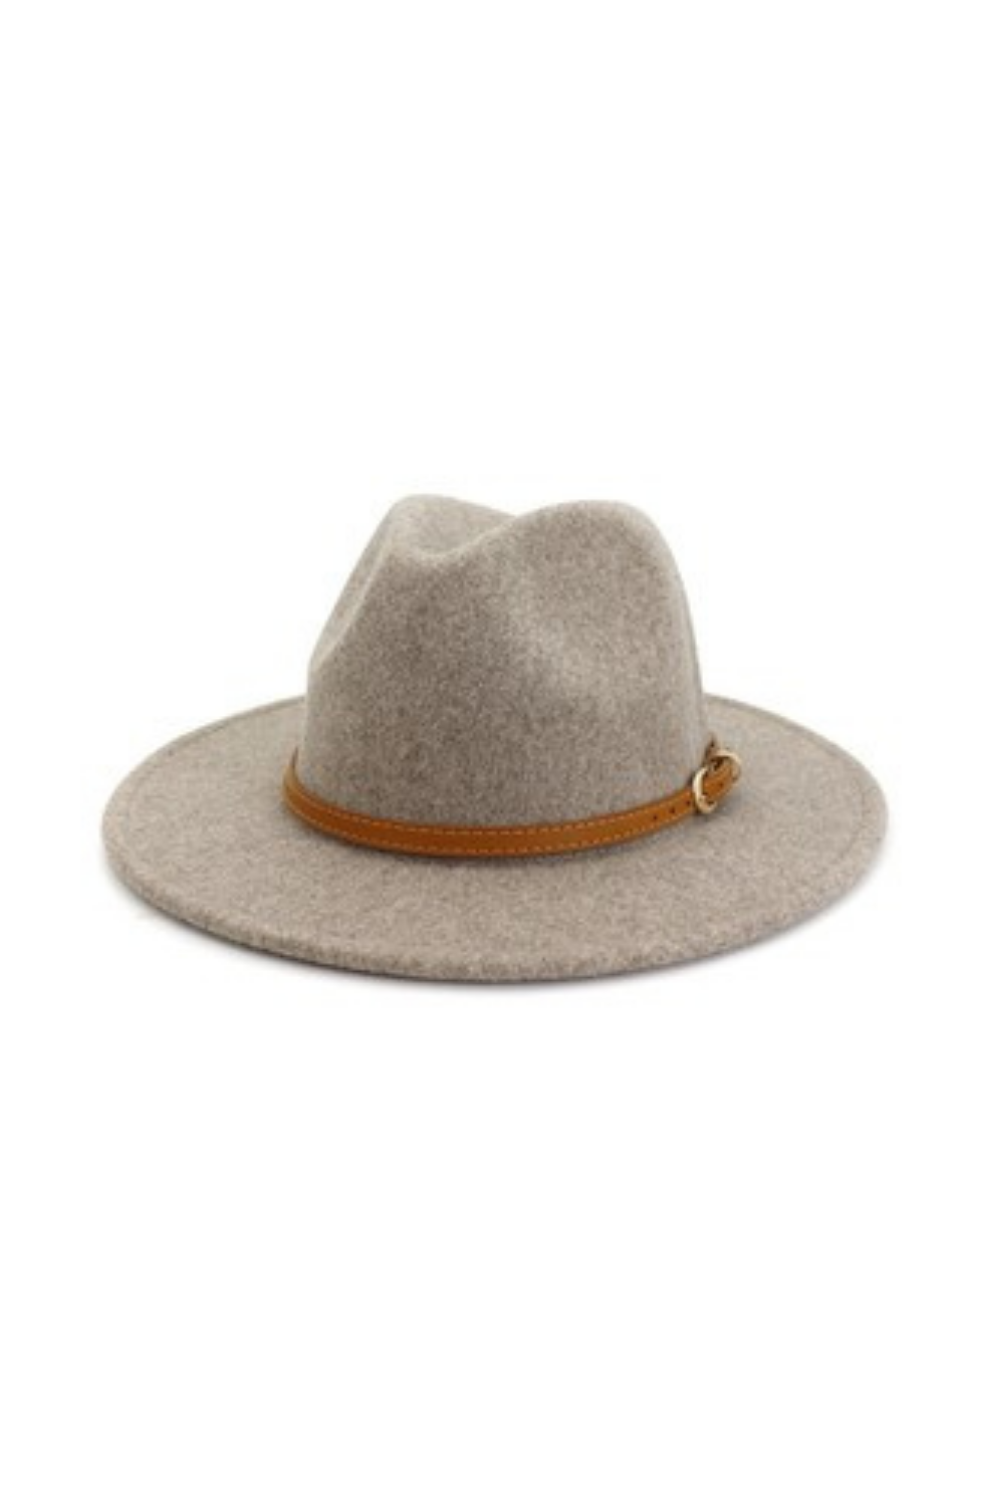 Rebel Without a Cause Dark Ivory Panama Hat